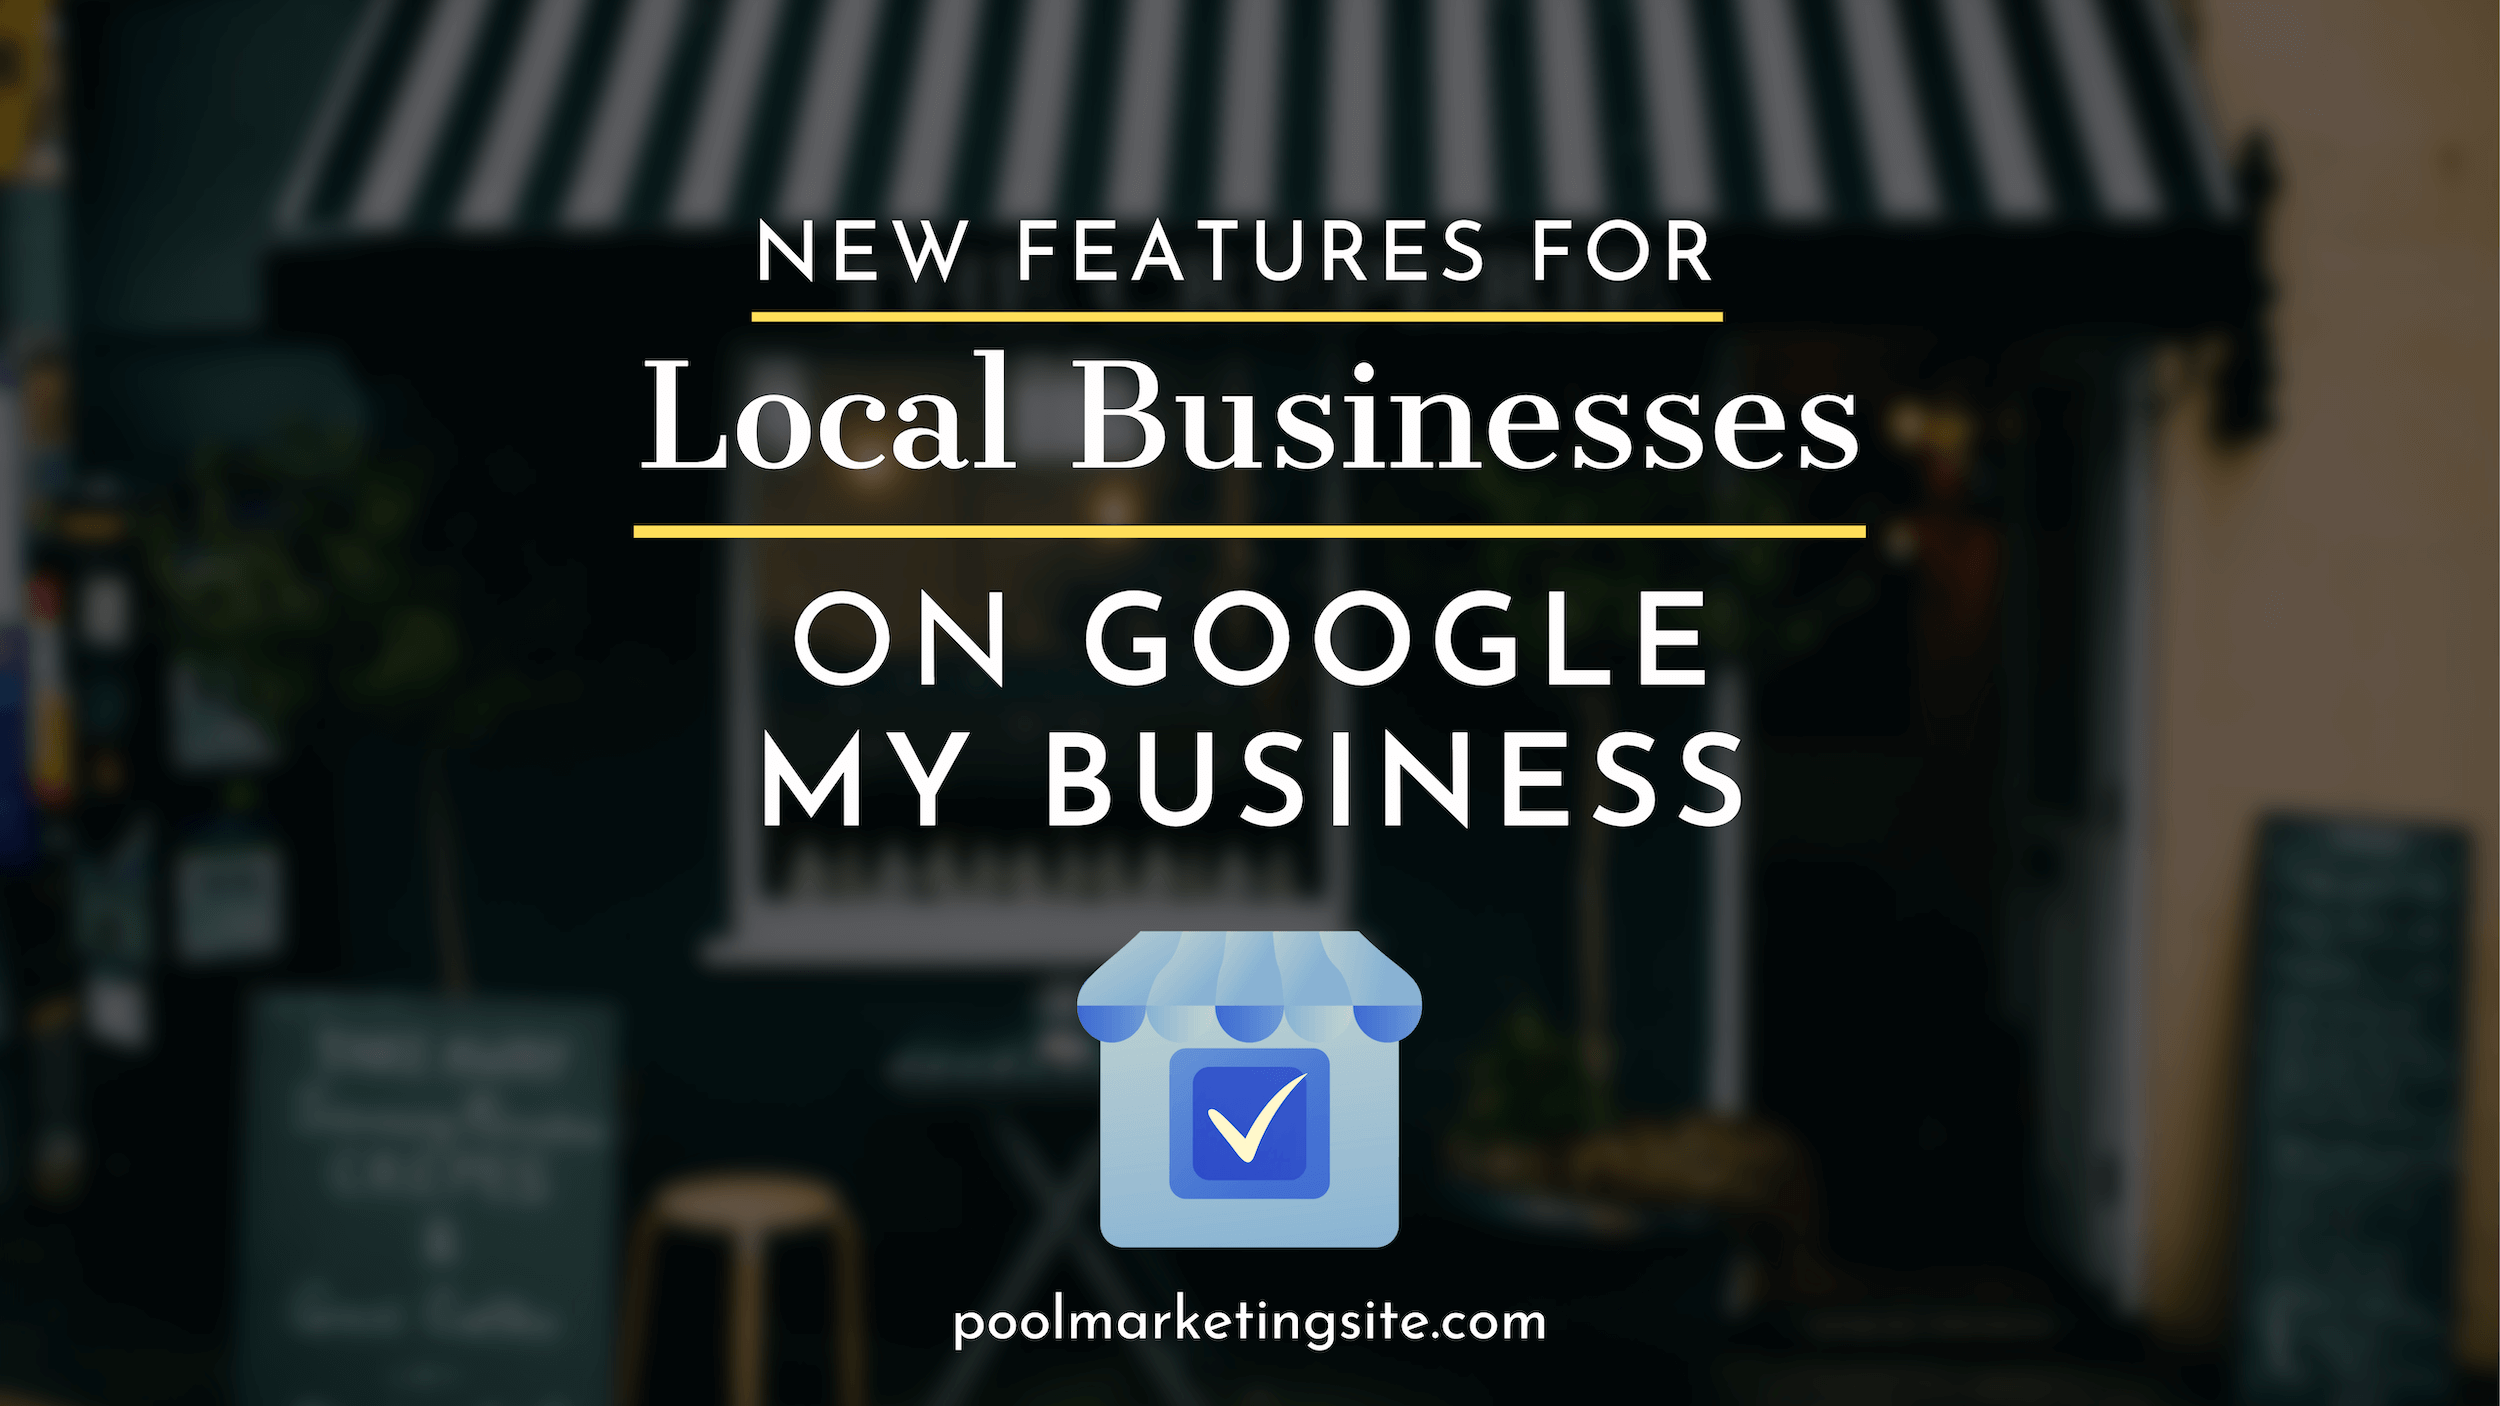 New Features for Local Businesses on Google My Business